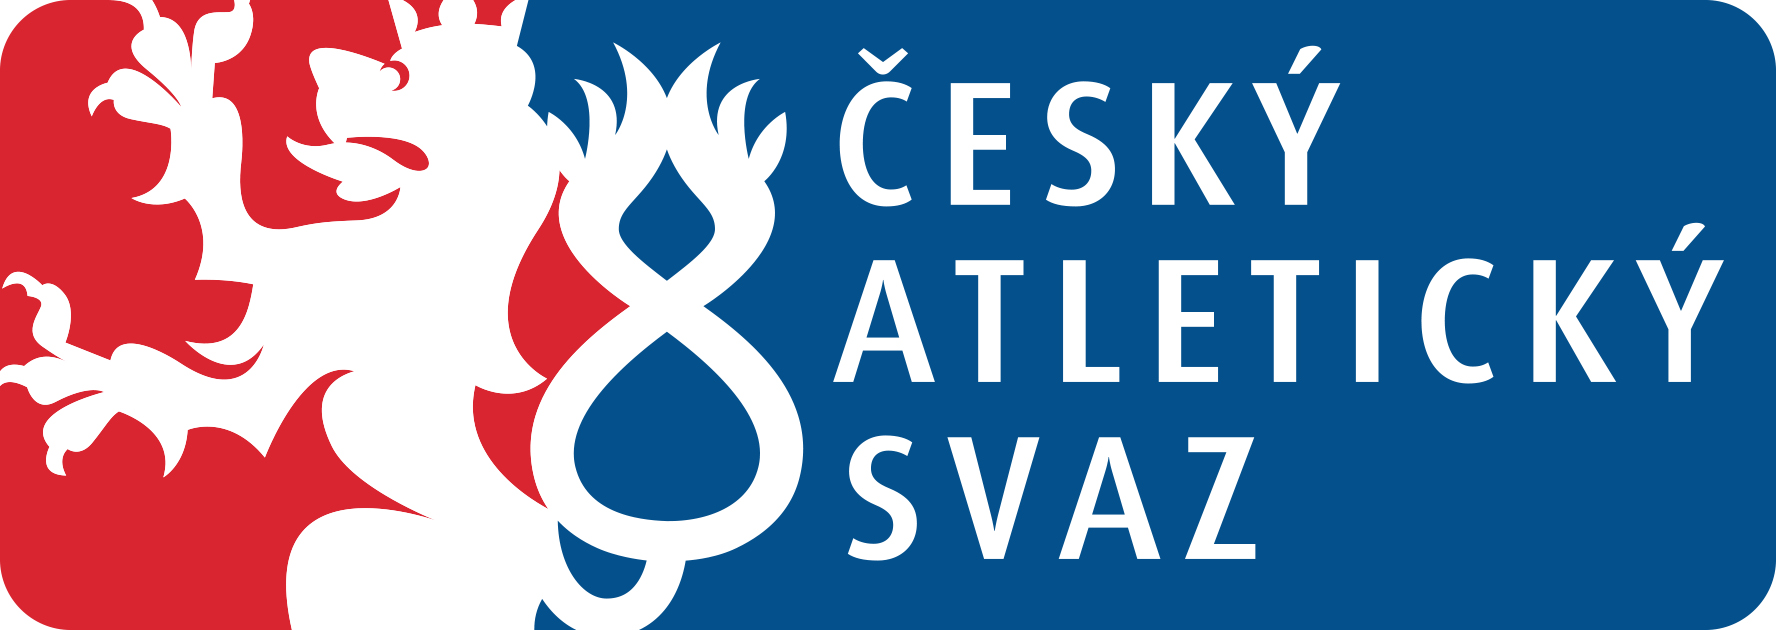 Český atletický svaz